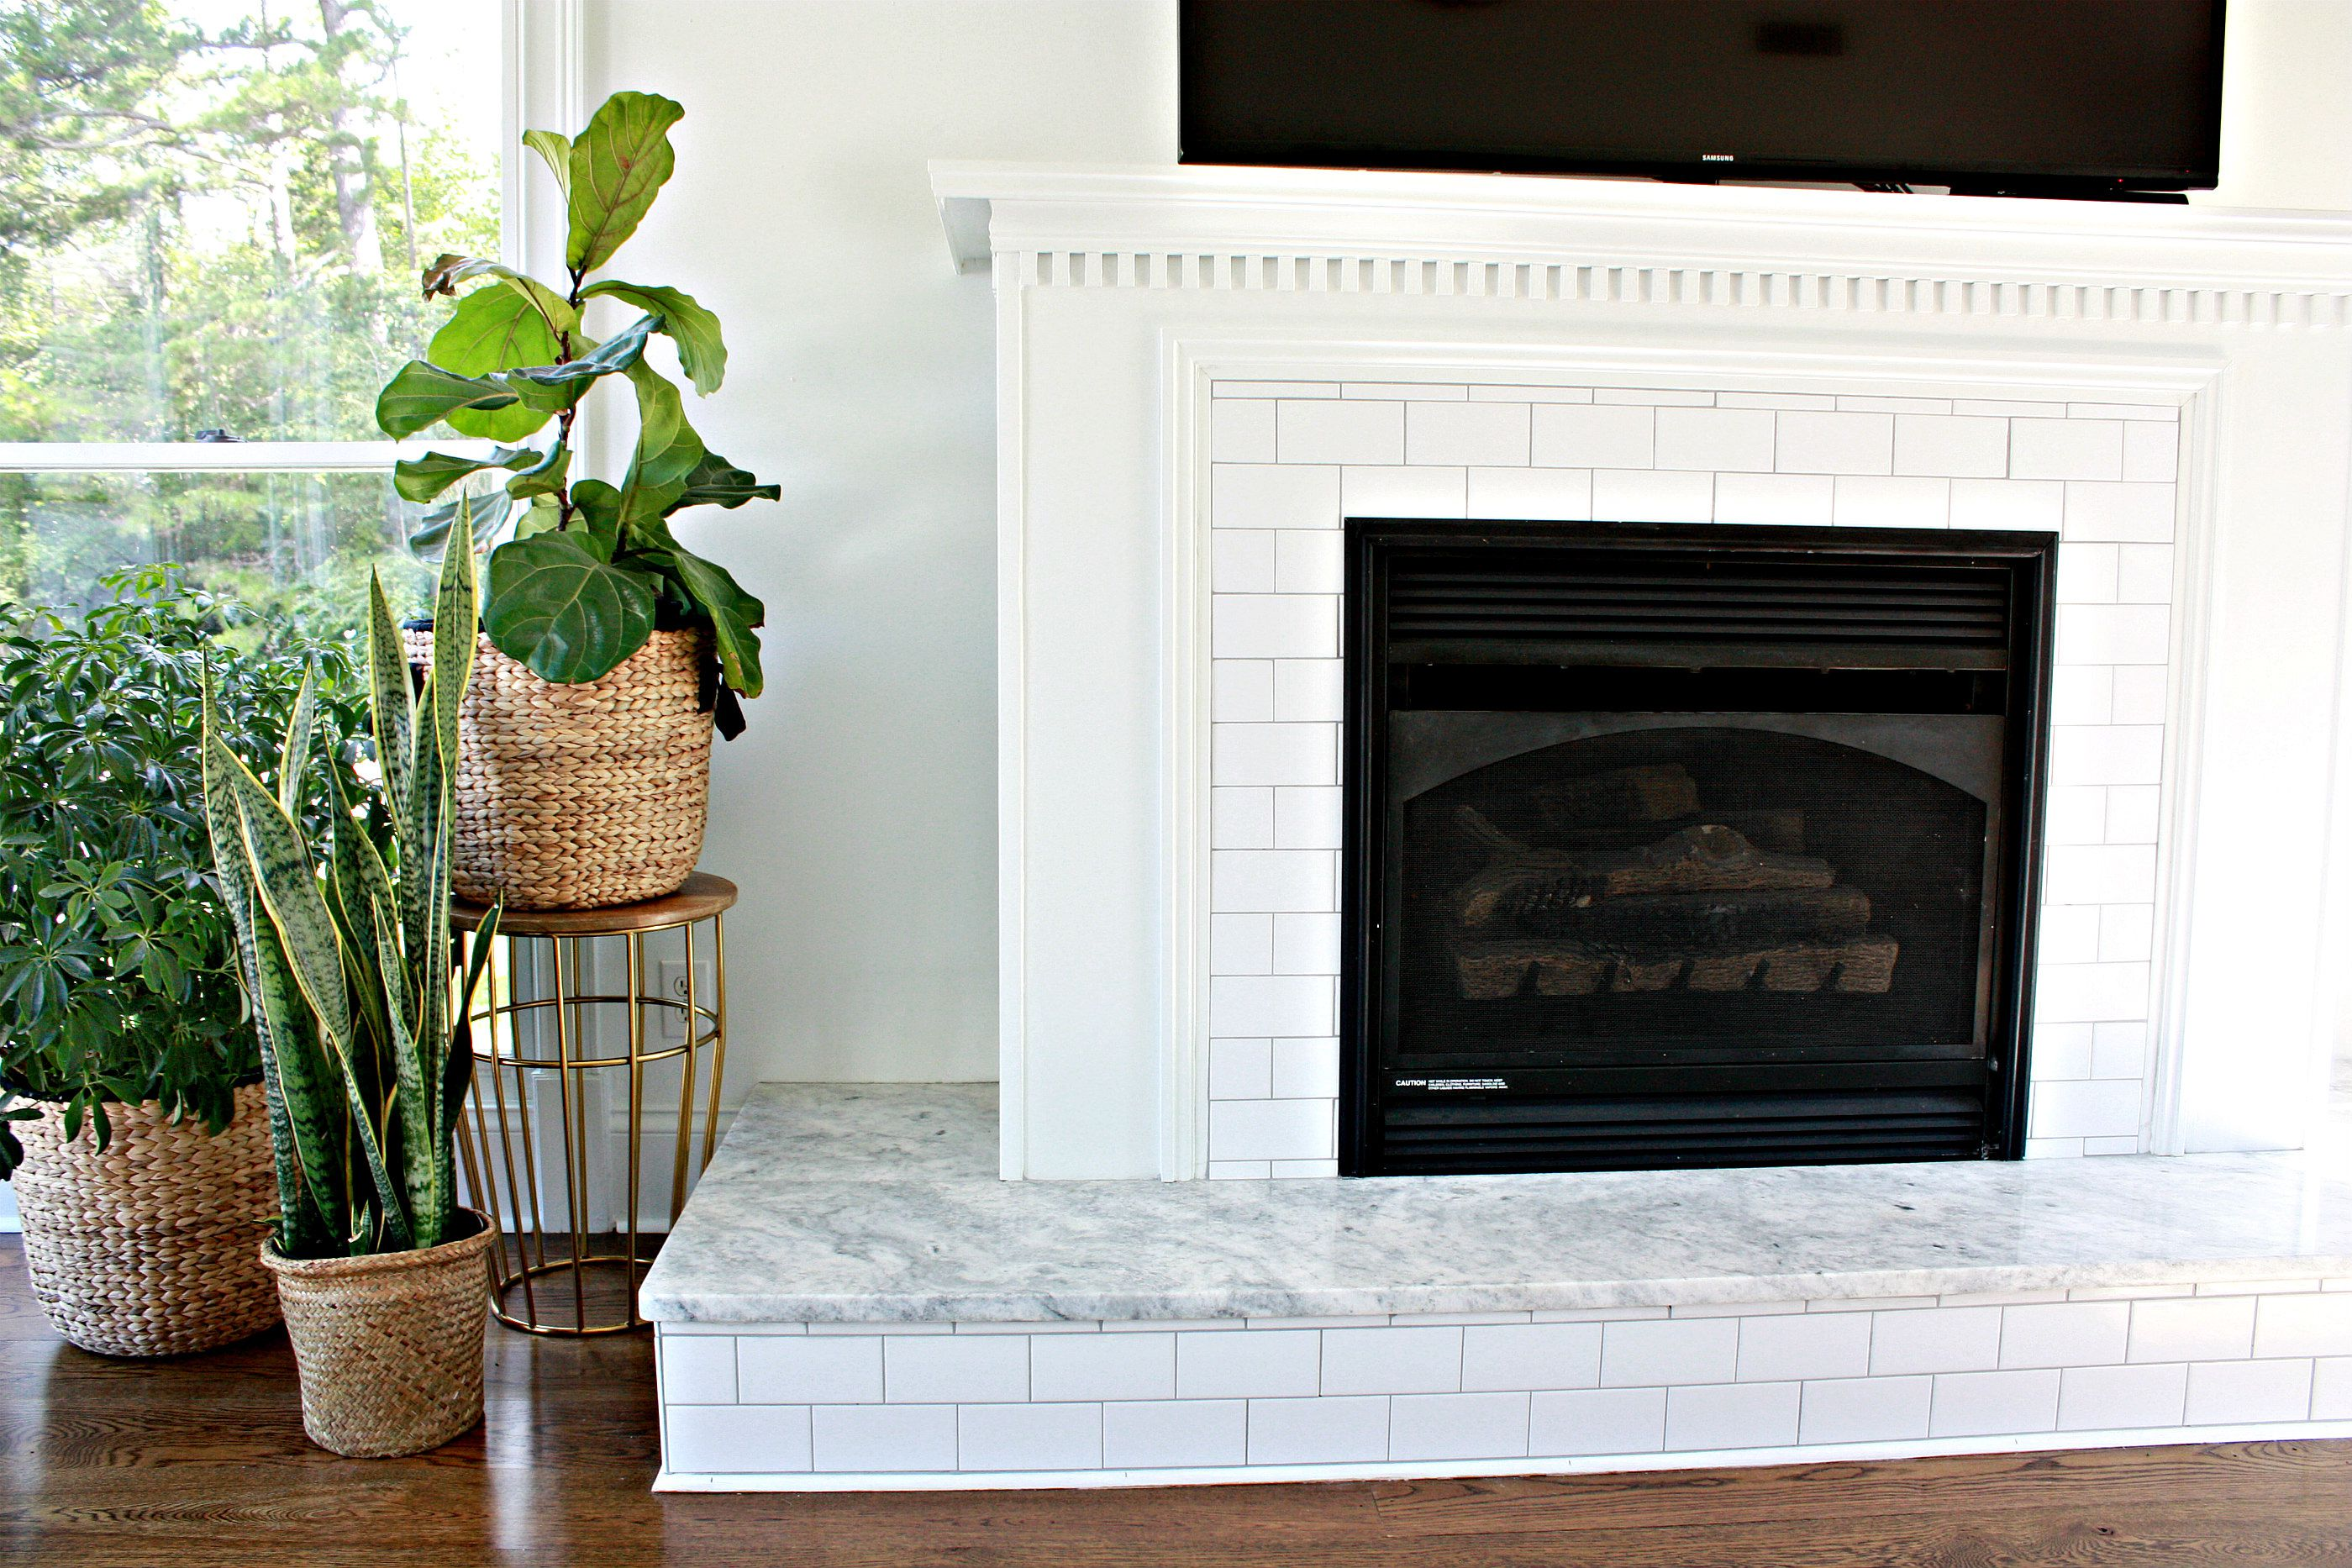 Granite Slab for Fireplace Hearth Luxury 25 Beautifully Tiled Fireplaces